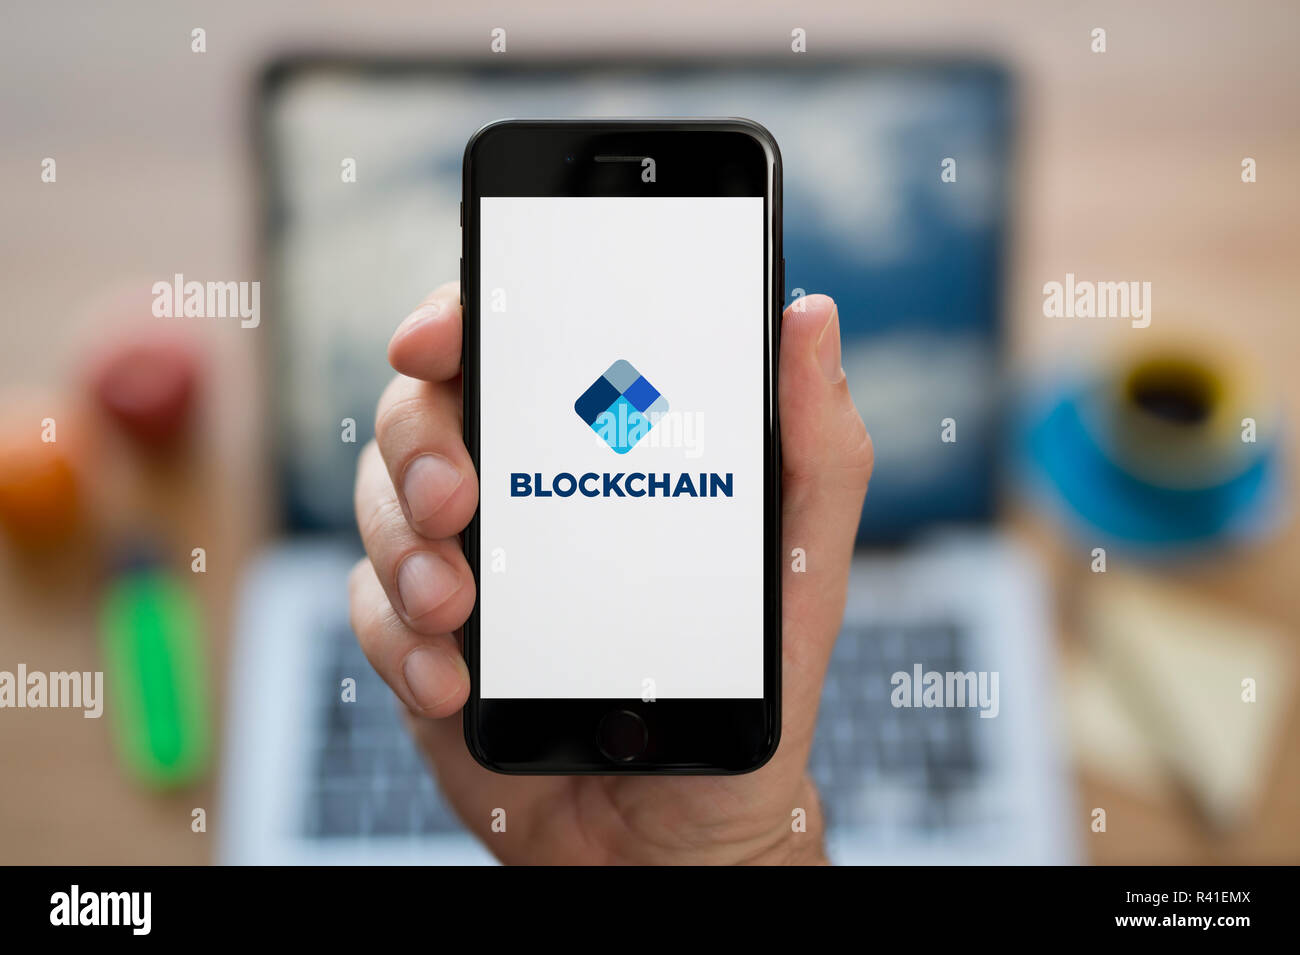 A man looks at his iPhone which displays the Blockchain logo, while sat at his computer desk (Editorial use only). - Stock Image